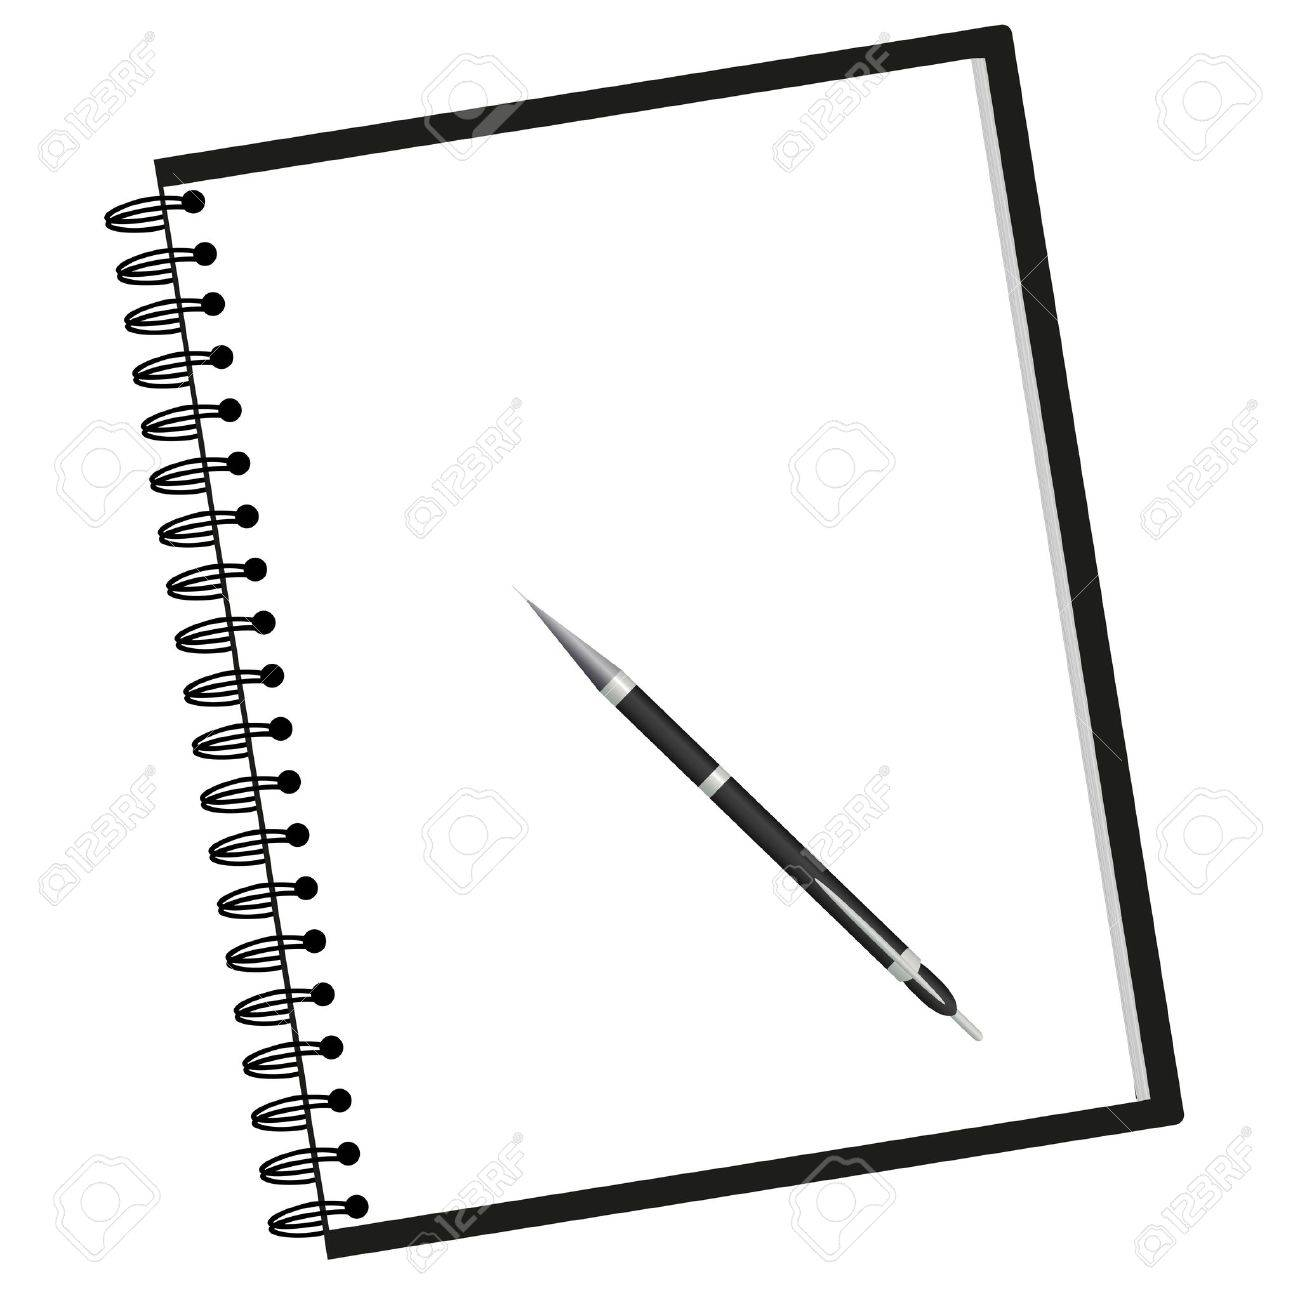 White notebook clipart png black and white library Notebook Clipart Black And White | Free download best Notebook ... png black and white library